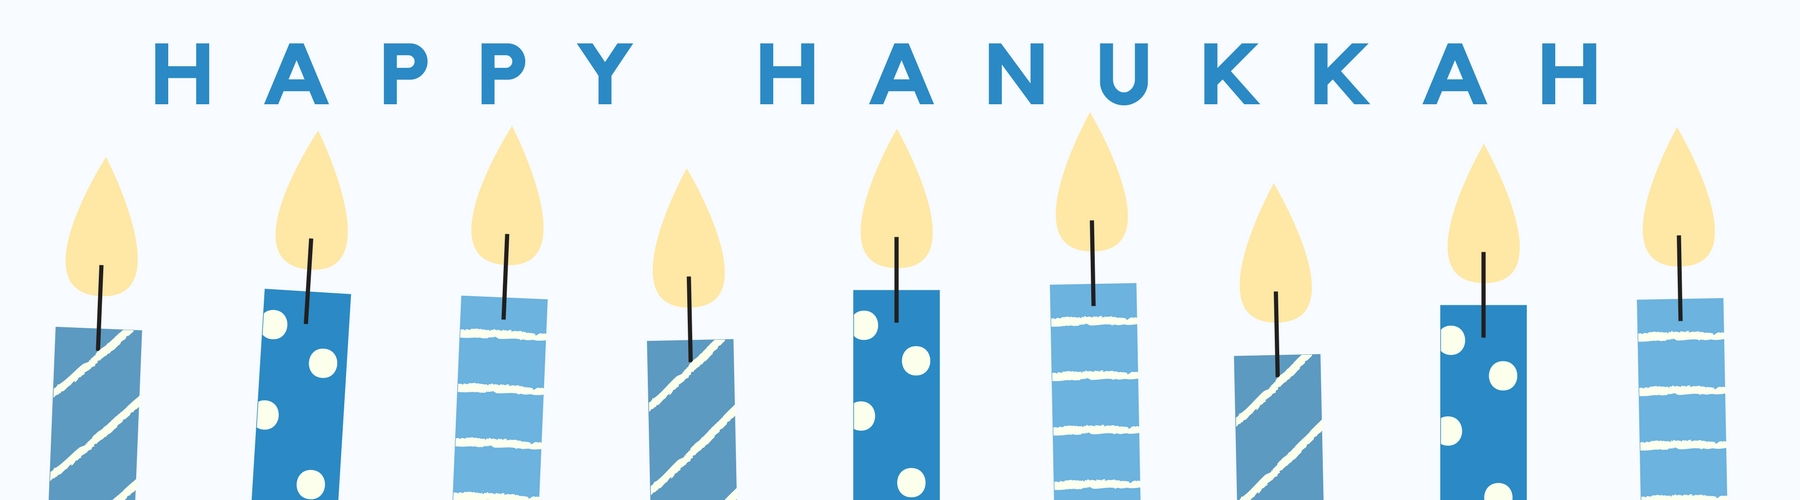 Hanukkah banner clipart clipart images gallery for free.